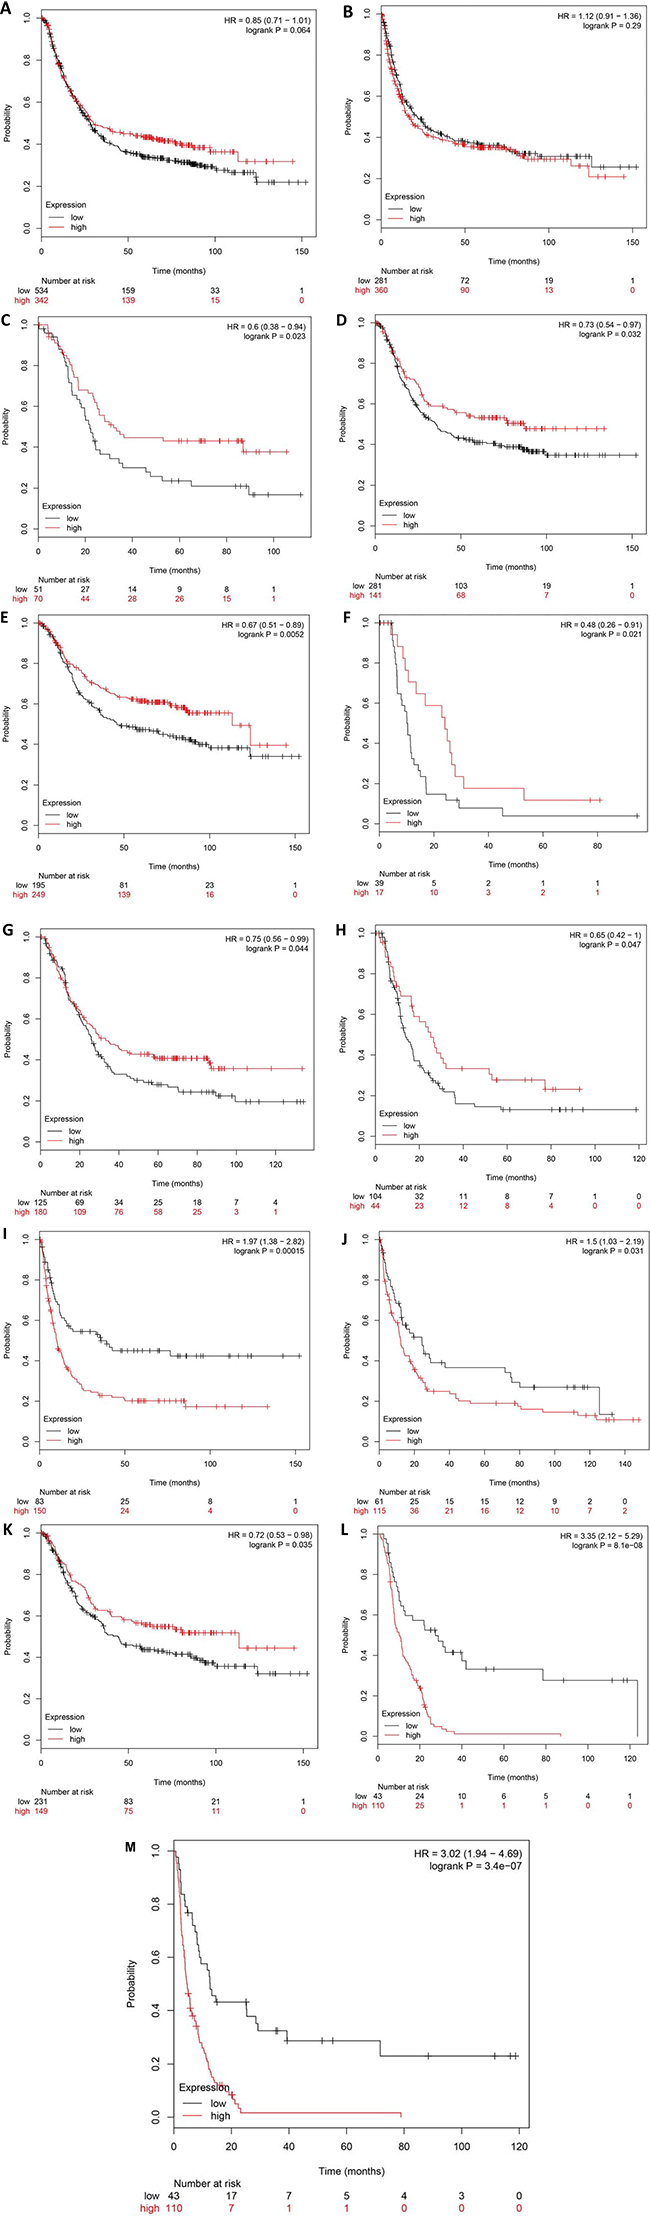 The prognostic significance of DNMT1 mRNA in the patients with gastric cancer according to the database from Kaplan Meier plotter.